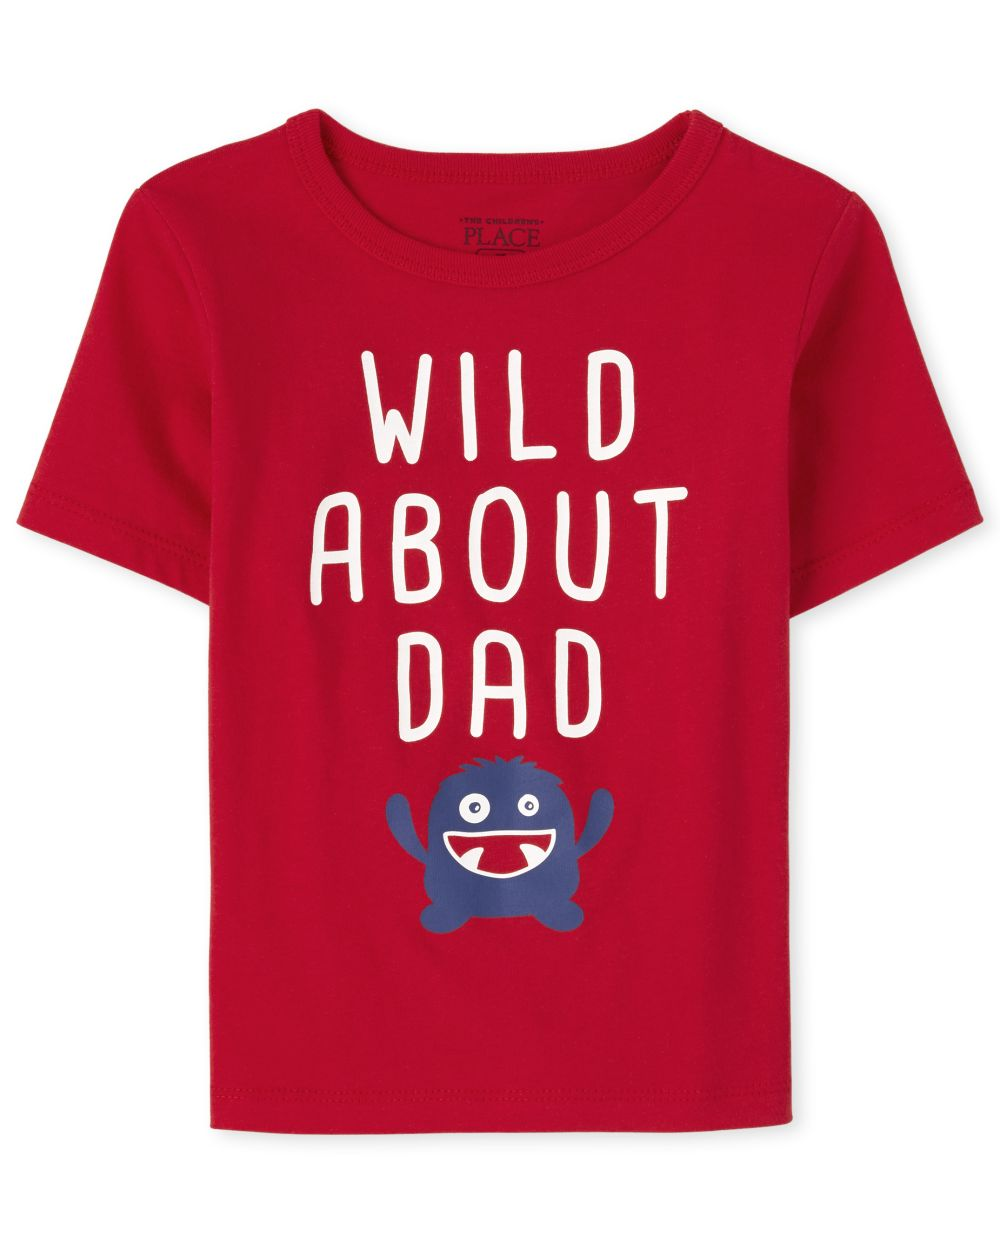 Baby And Toddler Boys Wild About Dad Graphic Tee - Red T-Shirt